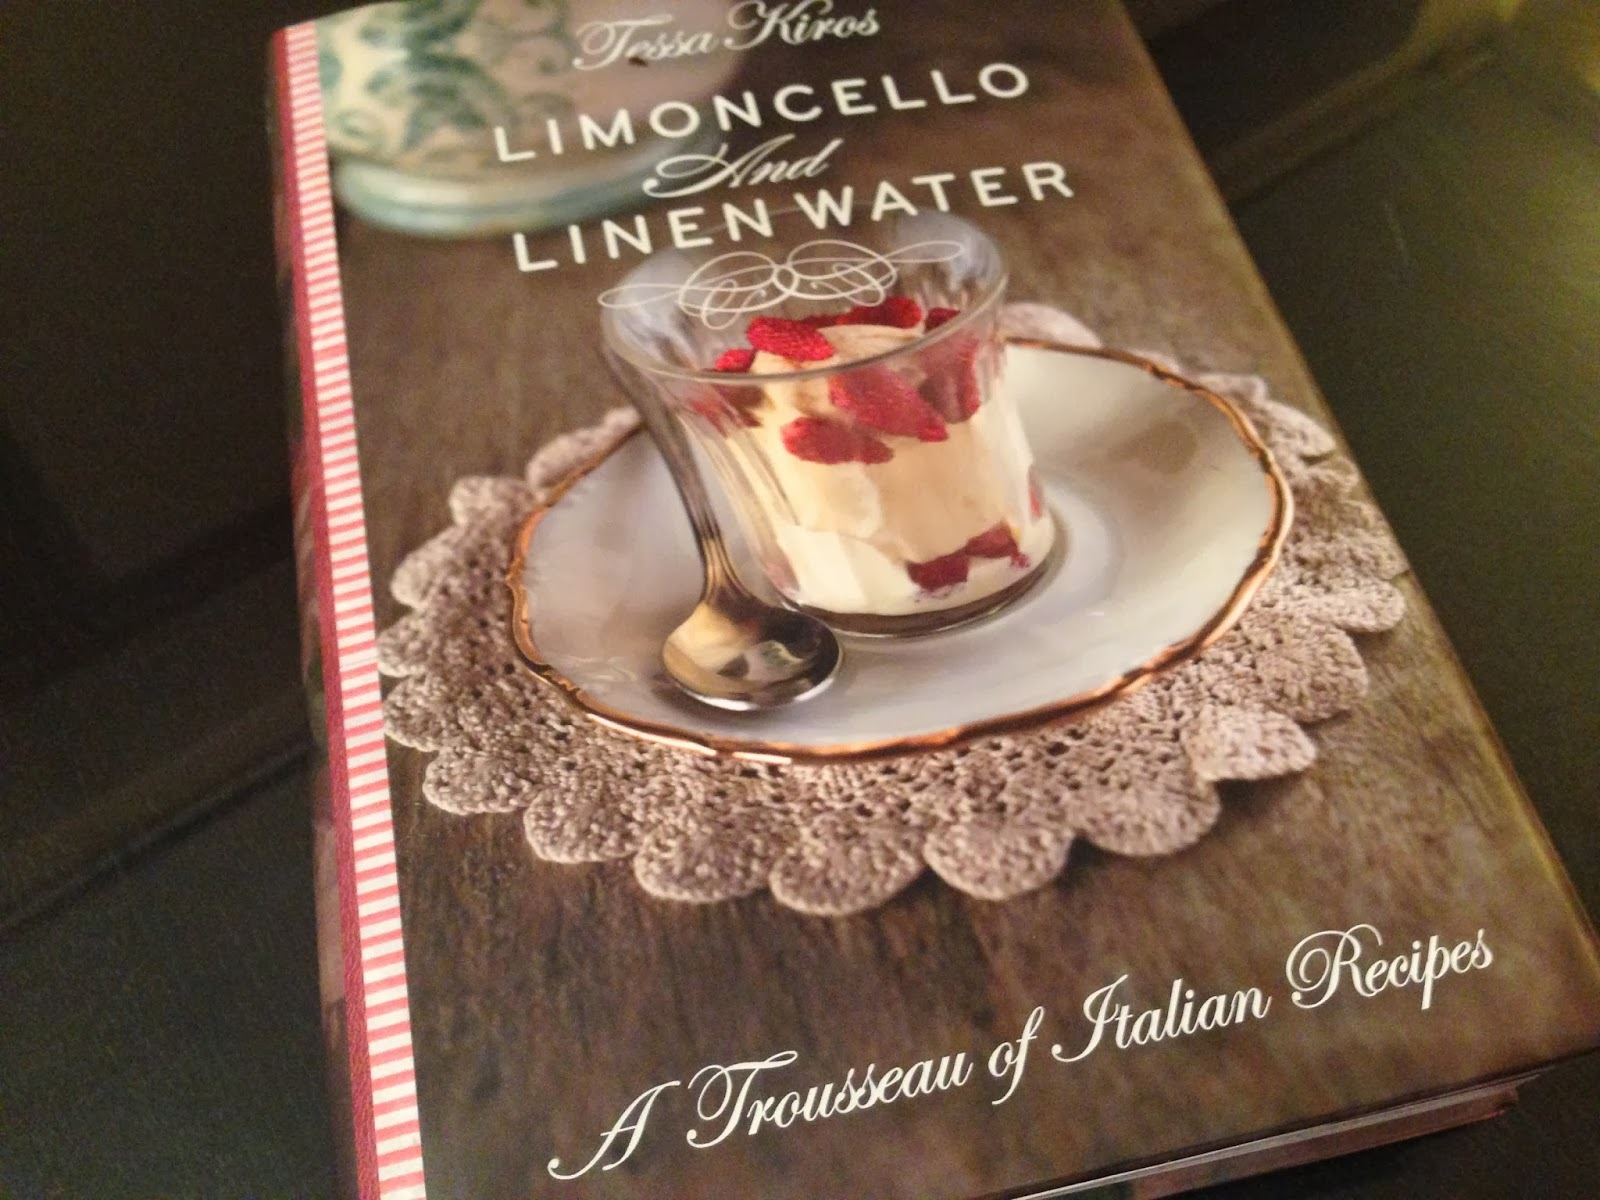 Livros #02: Limoncello and Linen Water